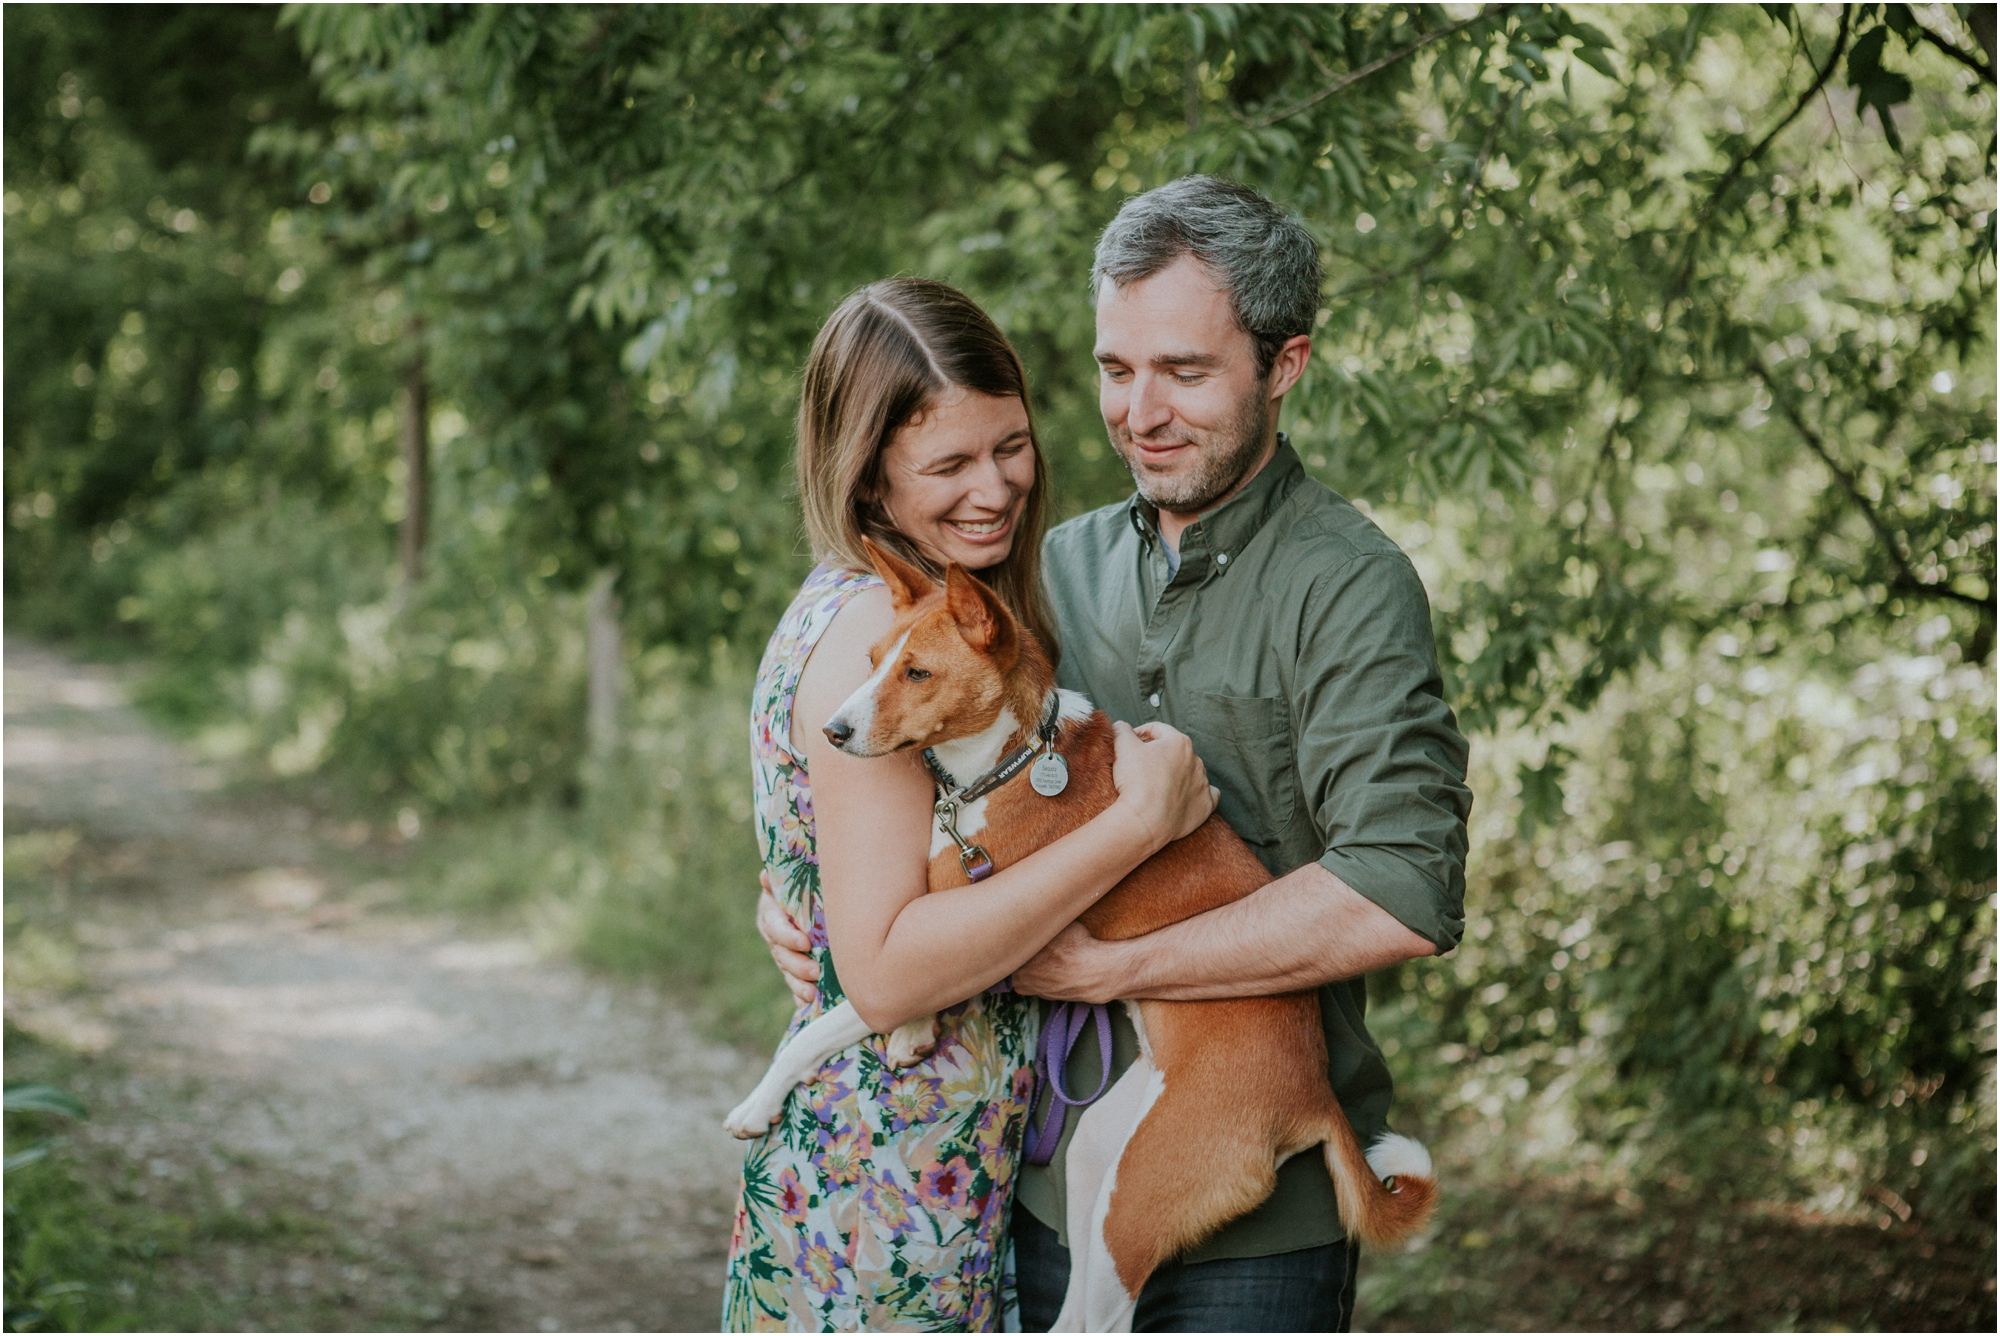 meads-quarry-ijams-nature-center-knoxville-tennessee-engagement-session-summer-northeast-tn-adventurous-outdoors-lake-katy-sergent_0003.jpg